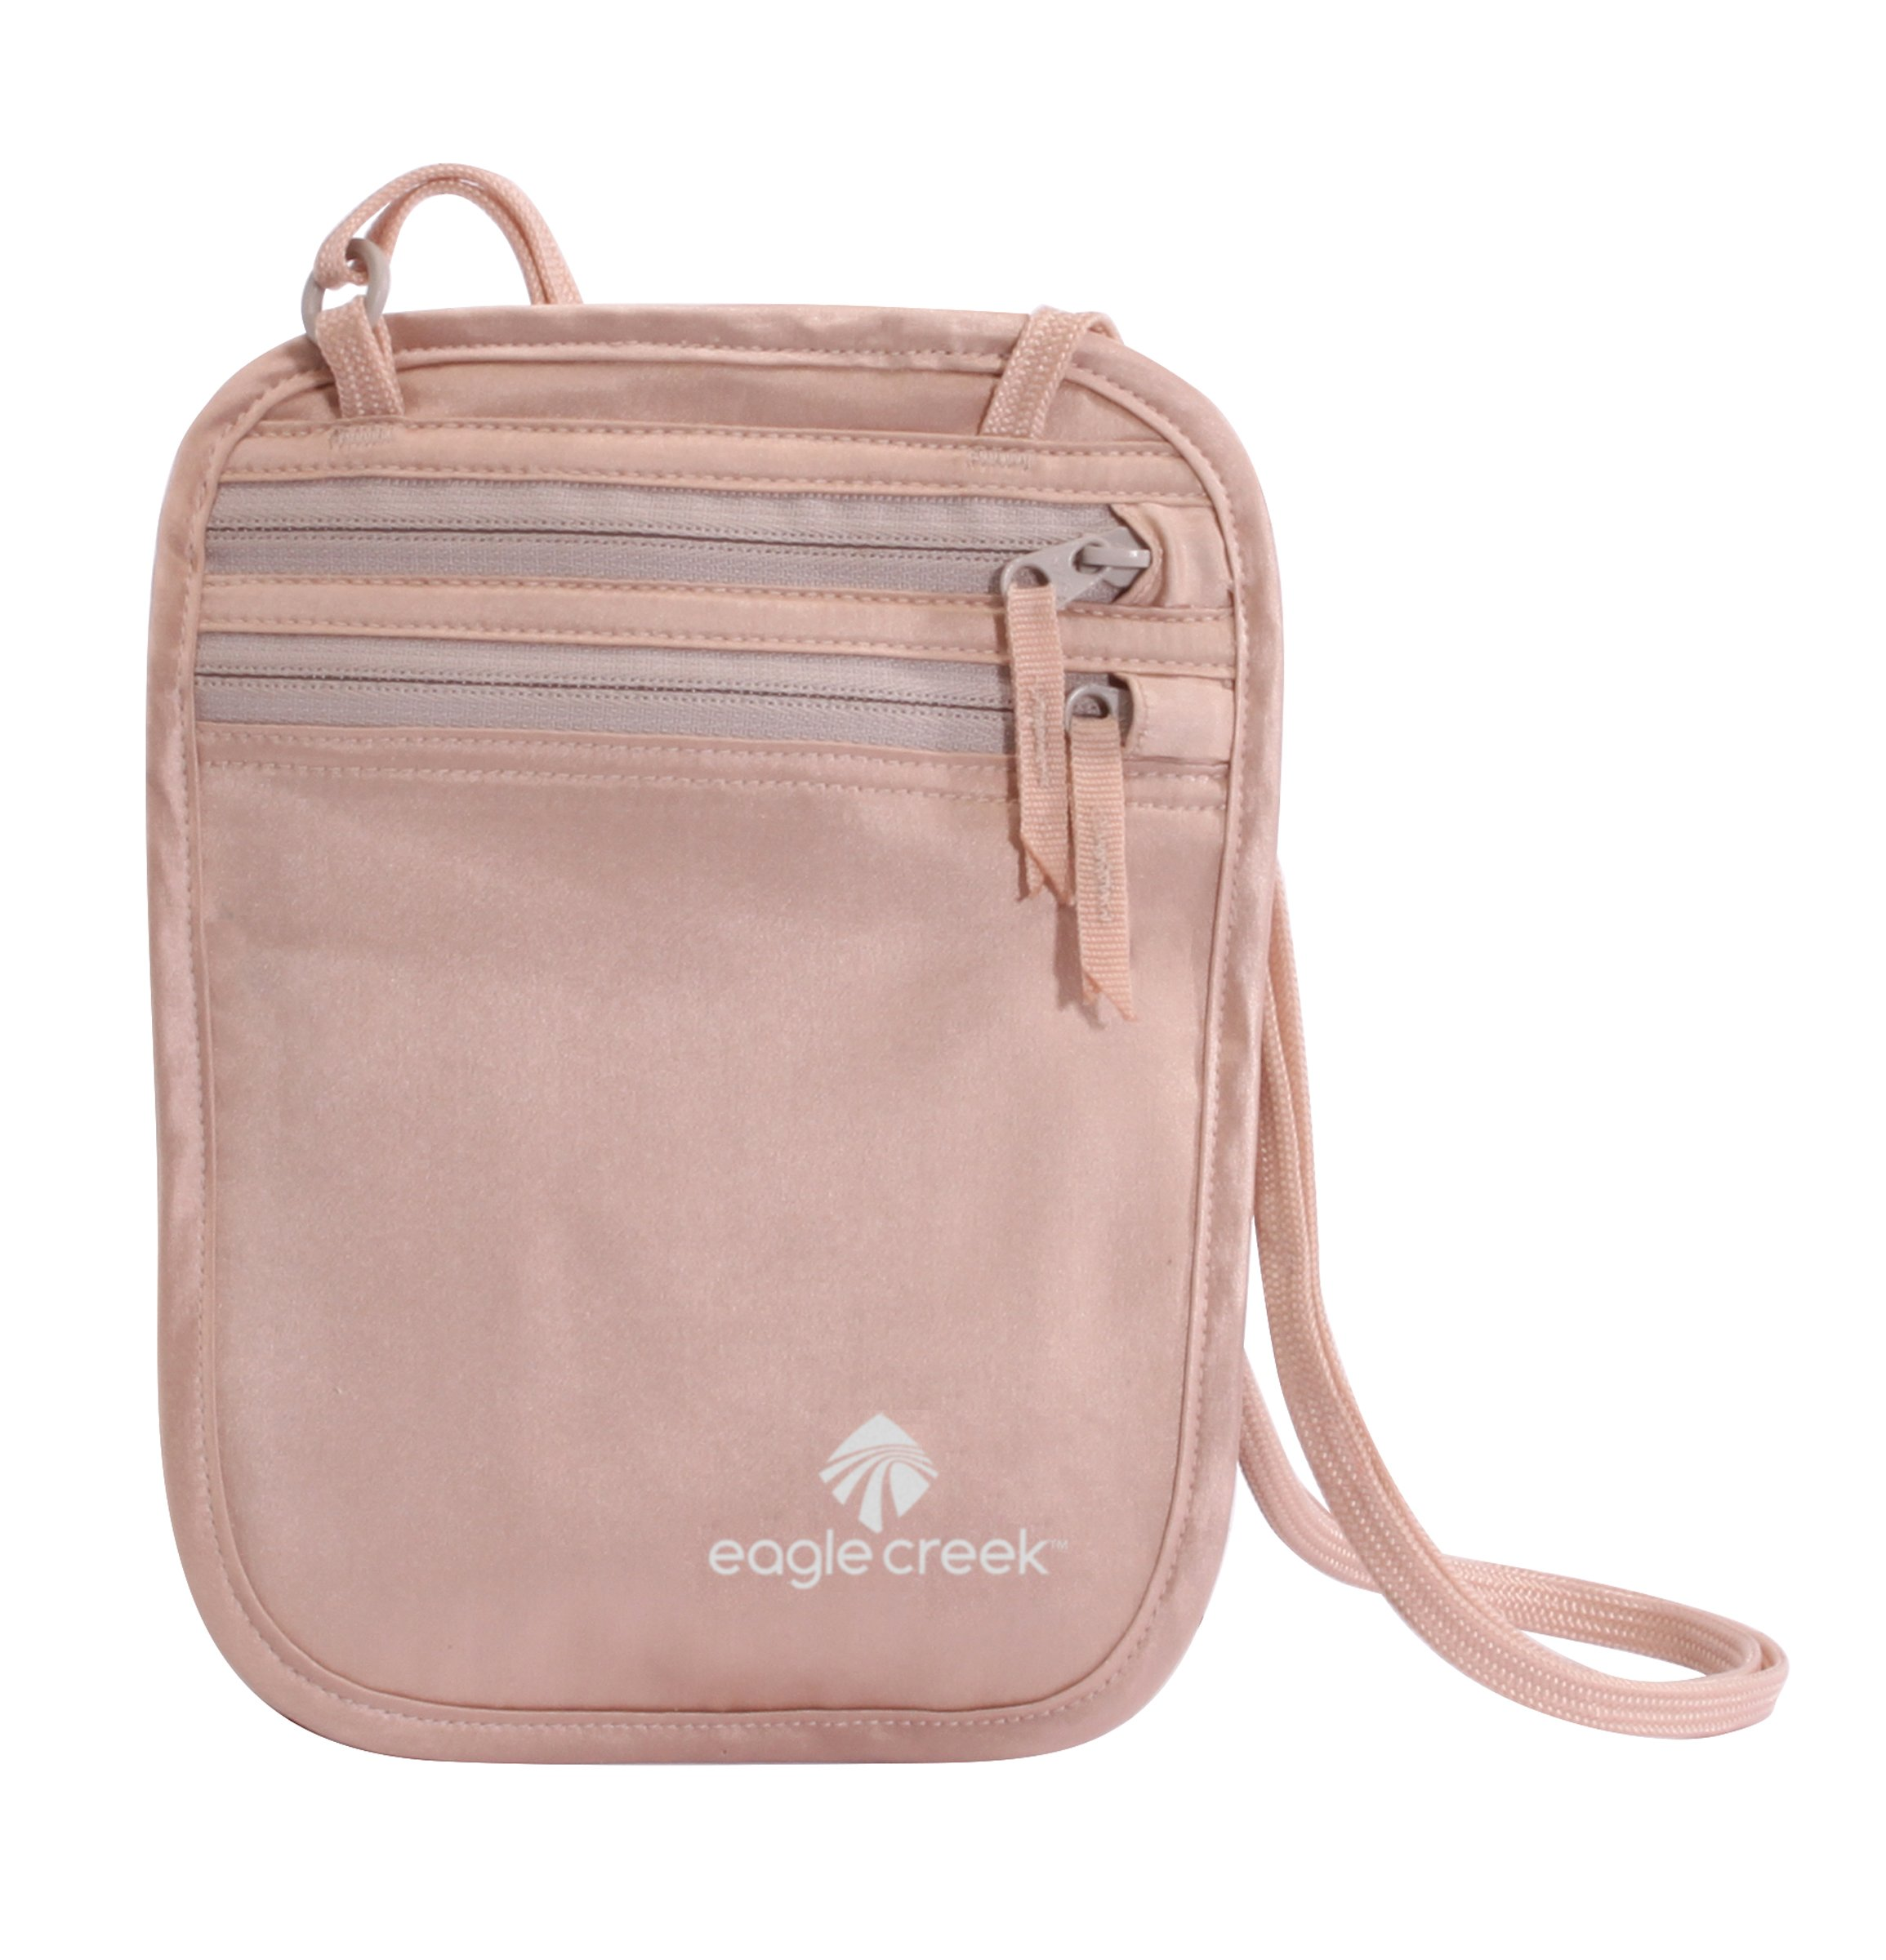 EAGLE CREEK TRAVEL GEAR Undercover Silk Neck Wallet, Rose